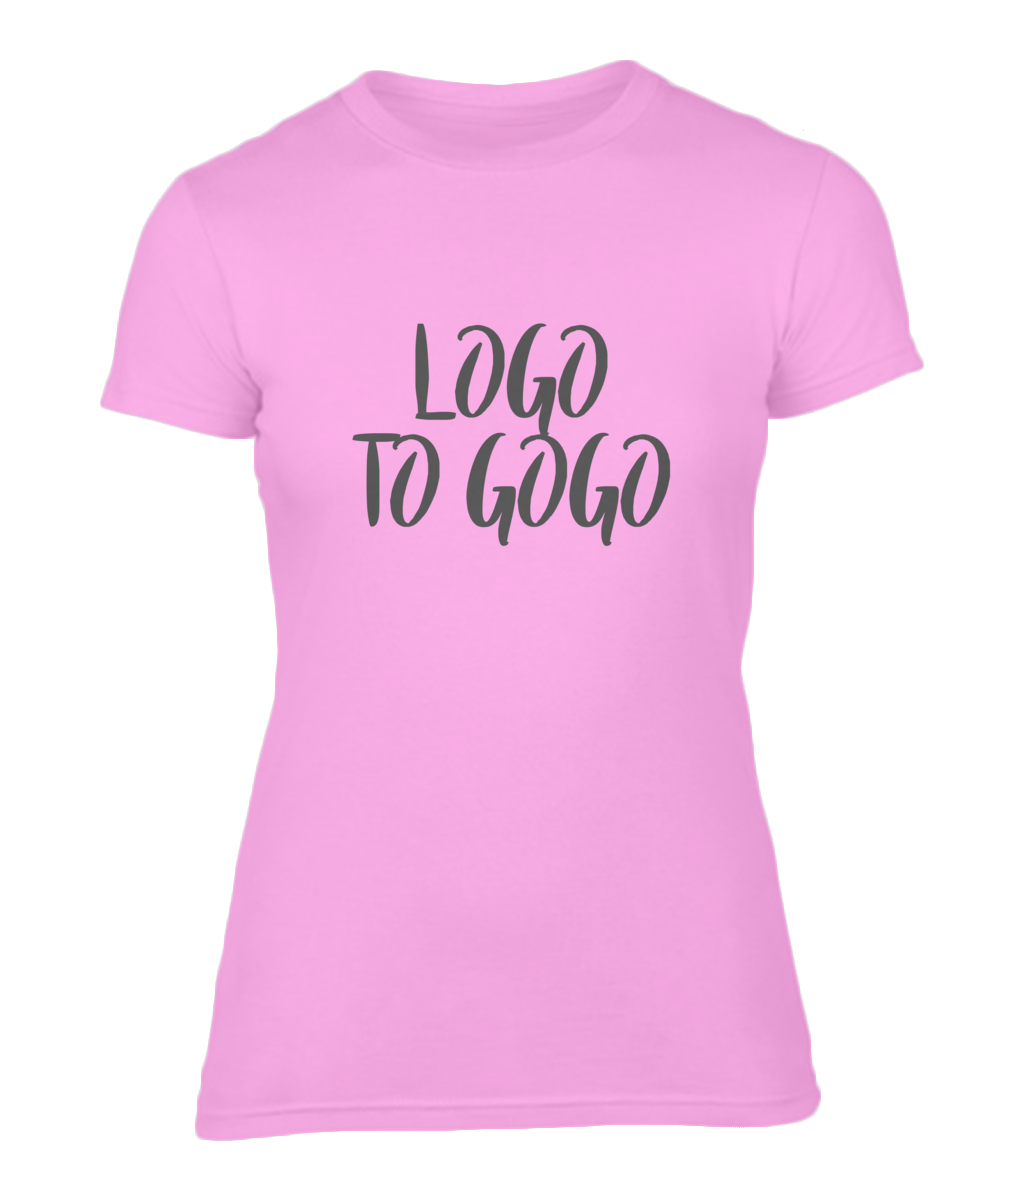 Ladies T-Shirt Logo To GoGo